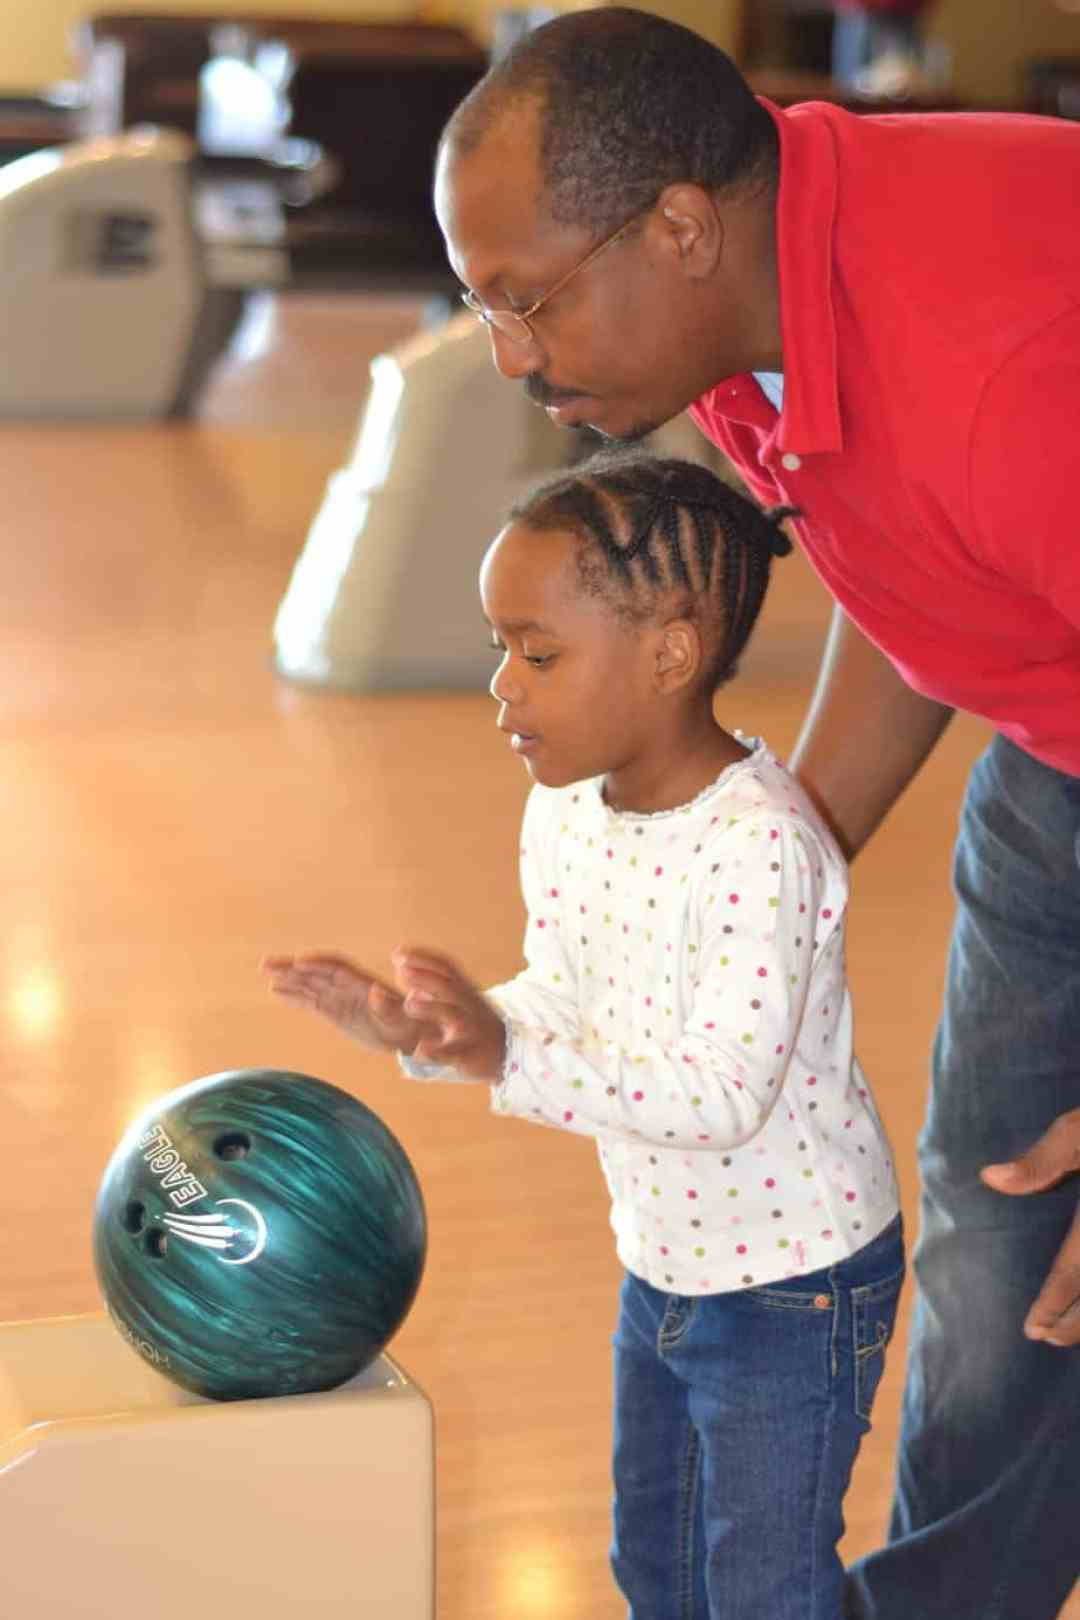 Pinstripes family bowling offers great opportunities for family bonding!